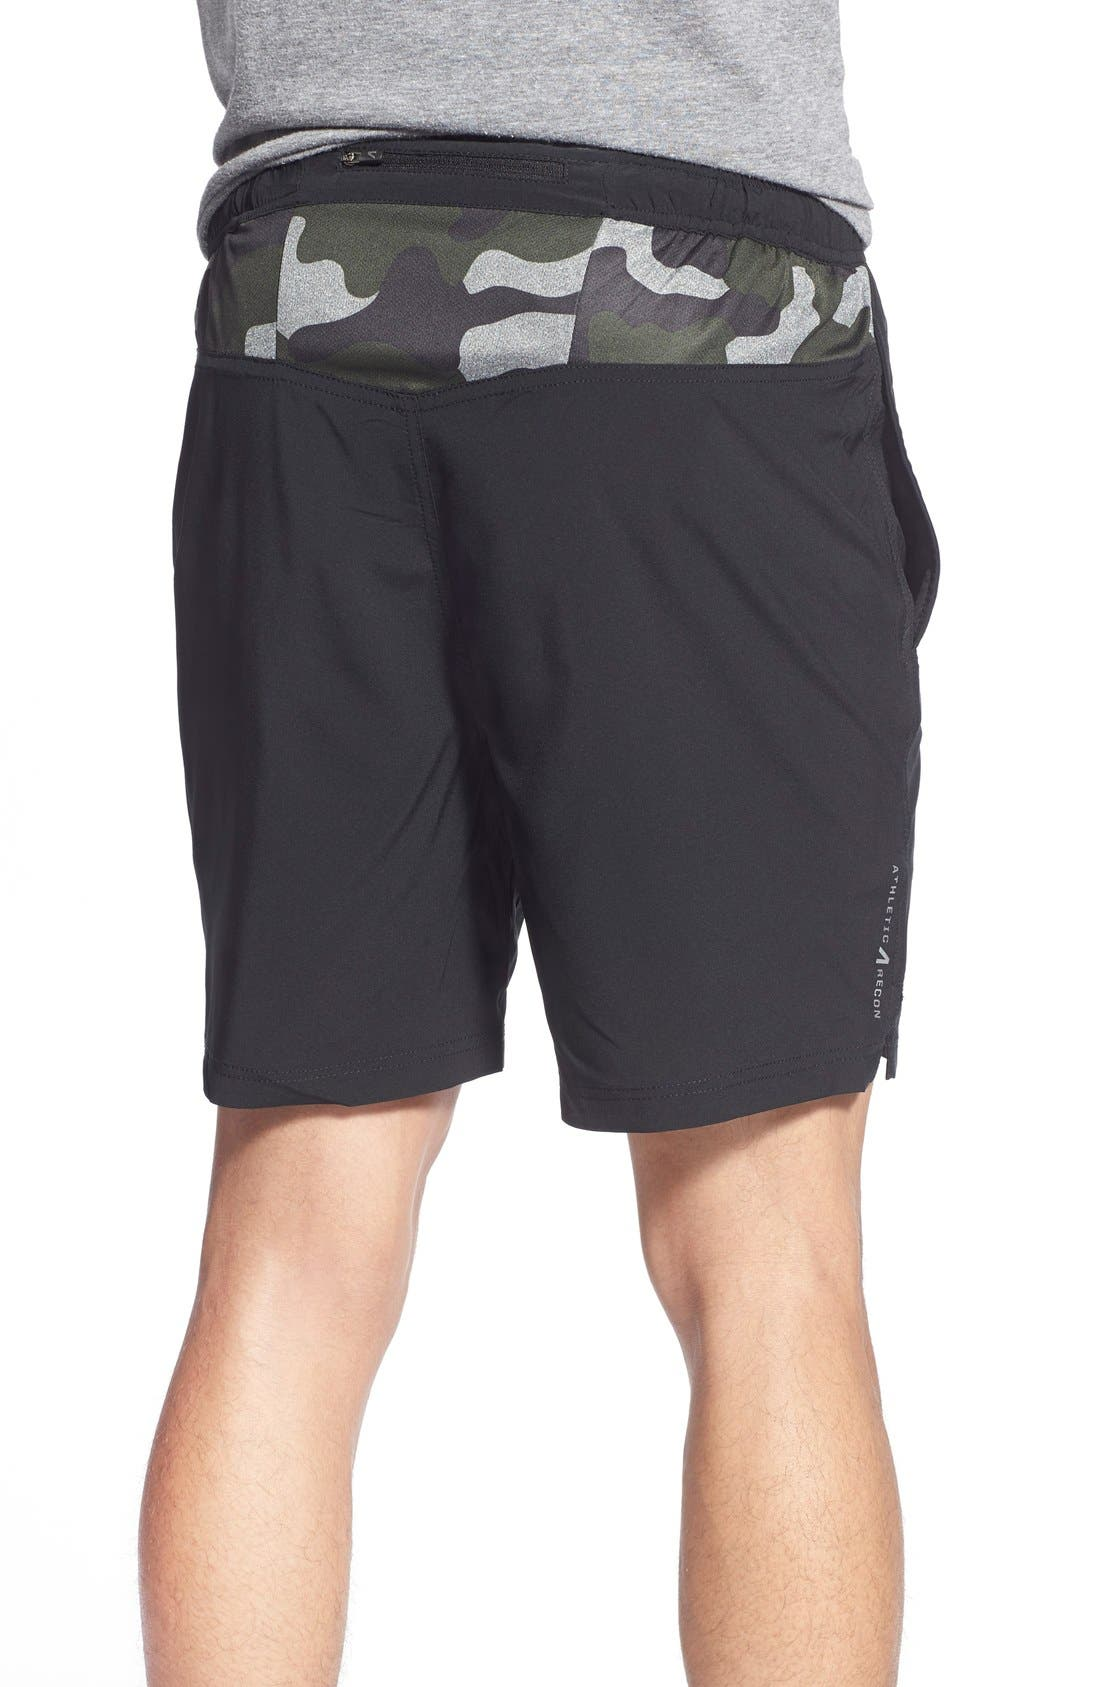 ATHLETIC RECON,                             '6.5' Stretch Woven Performance Shorts,                             Alternate thumbnail 5, color,                             001